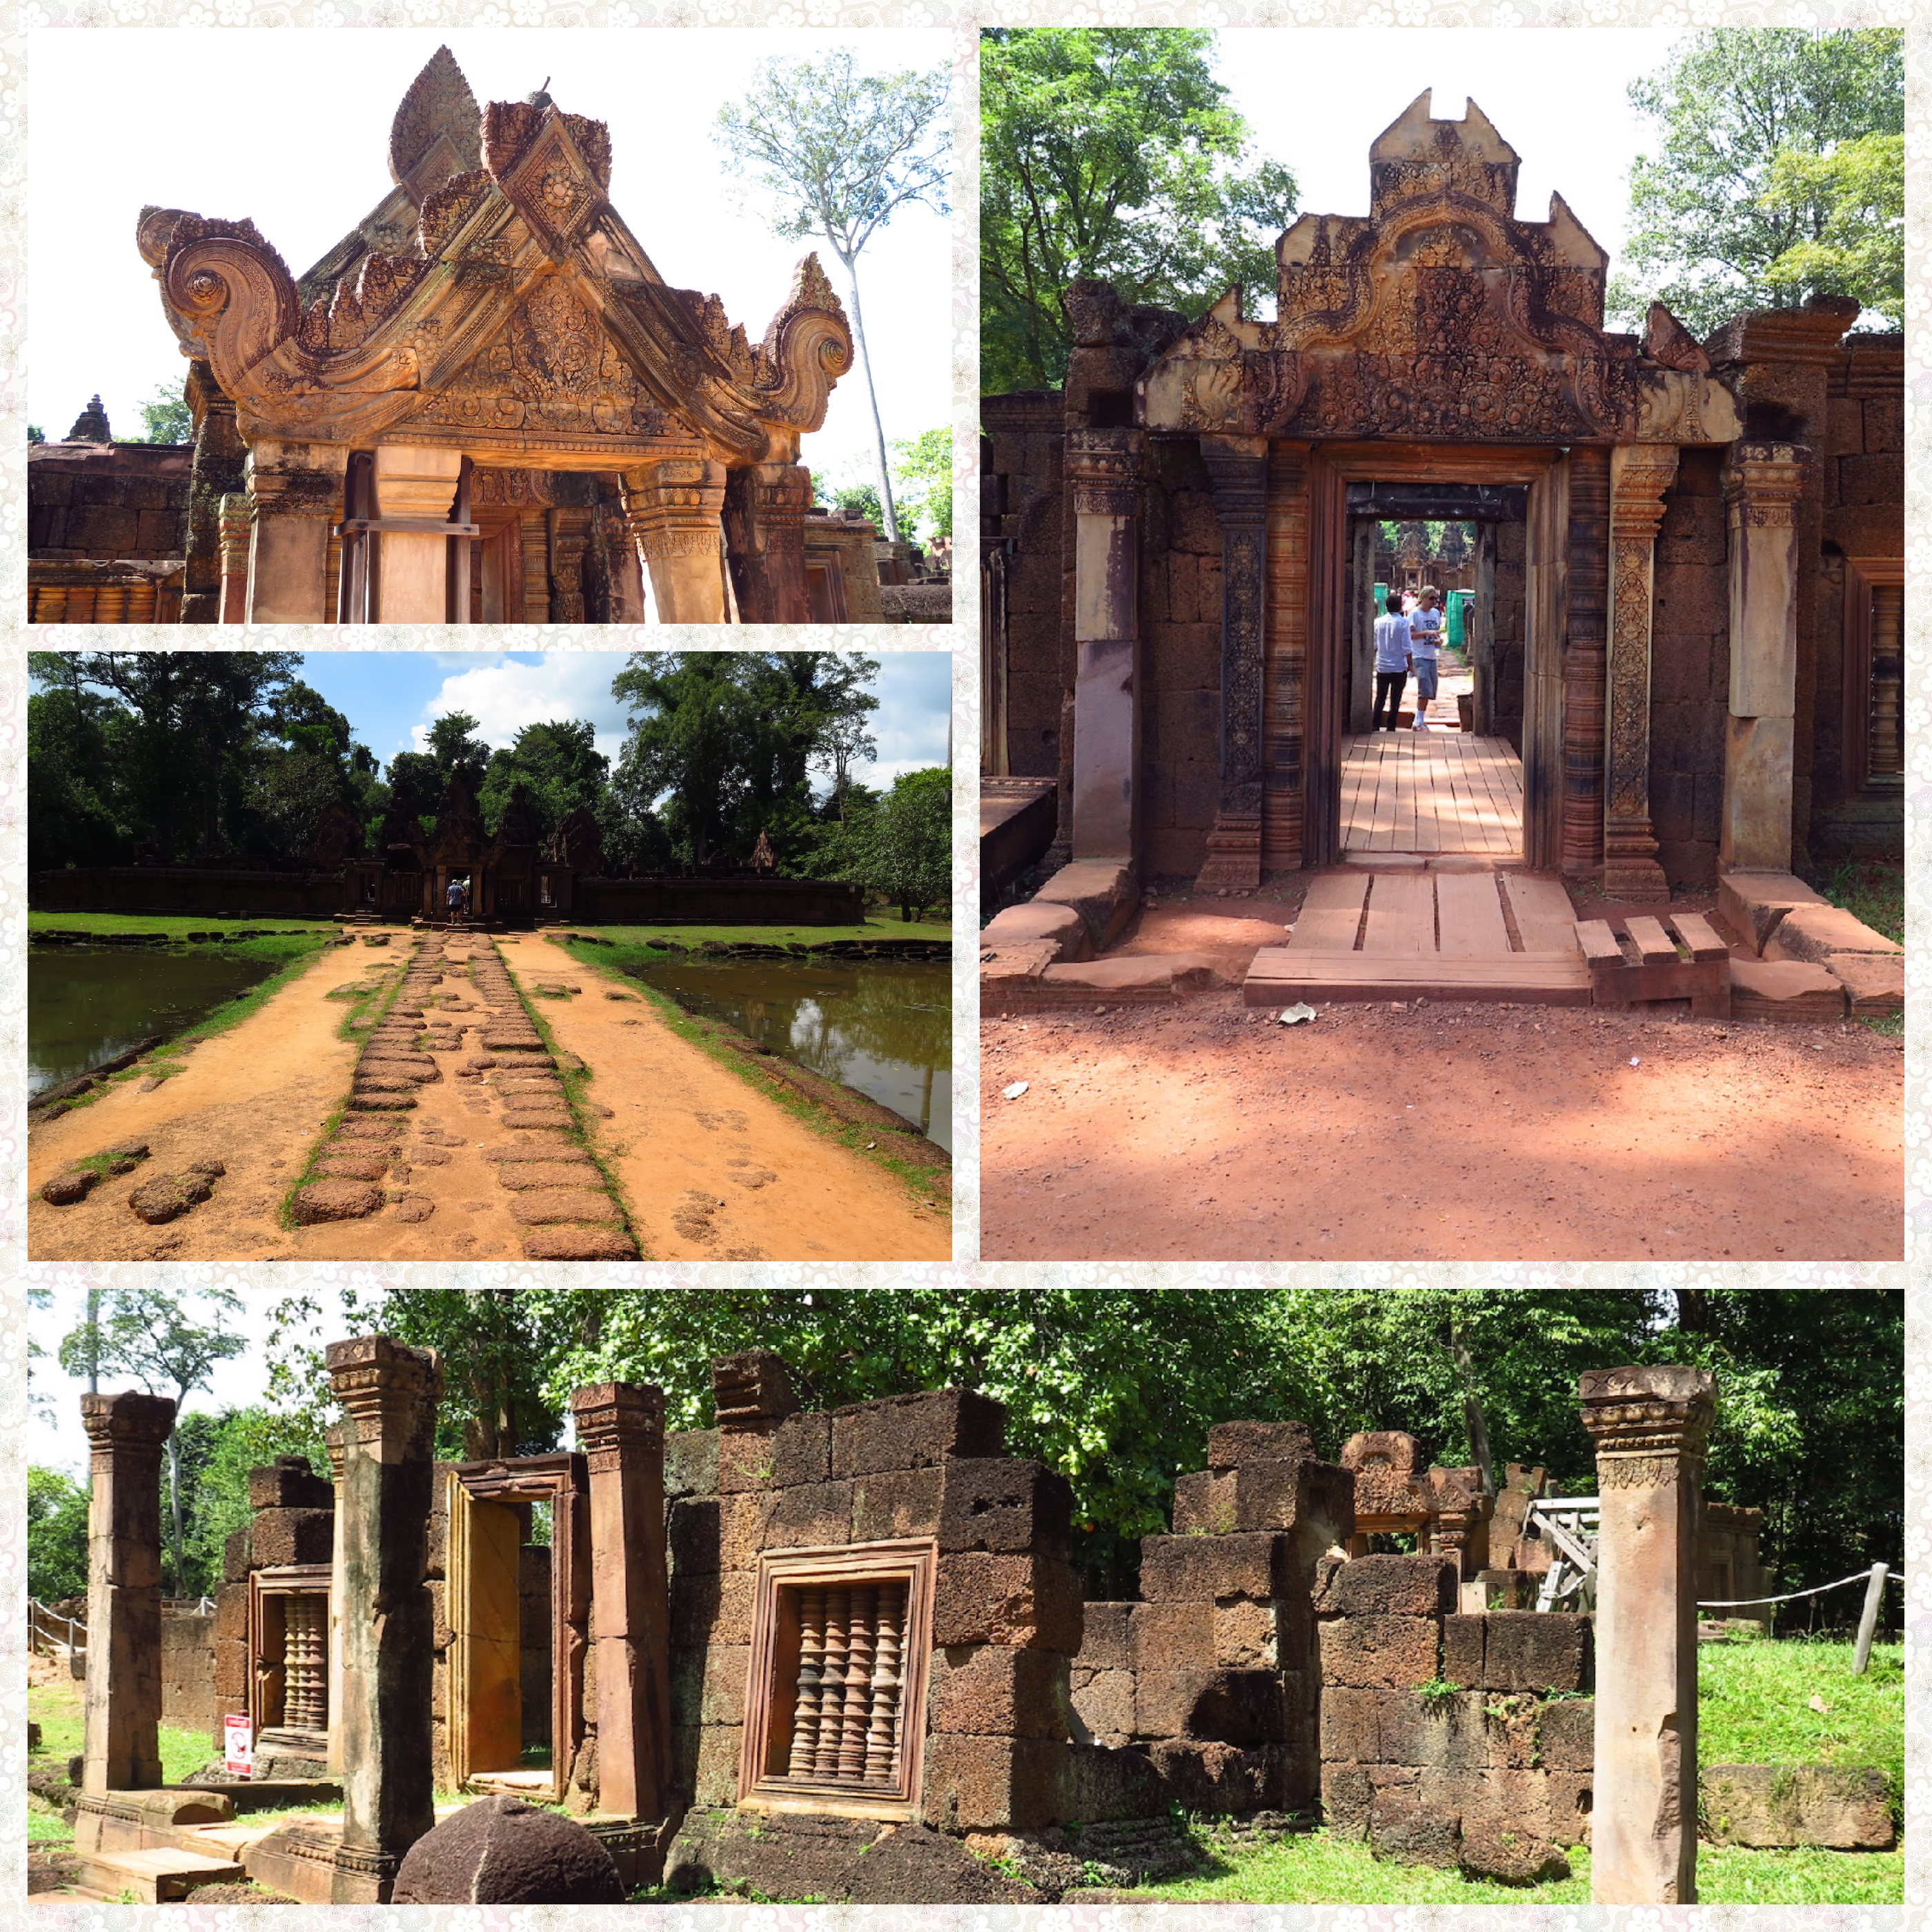 Banteay Srei entrance, Walkway, moat and sandstone ruins